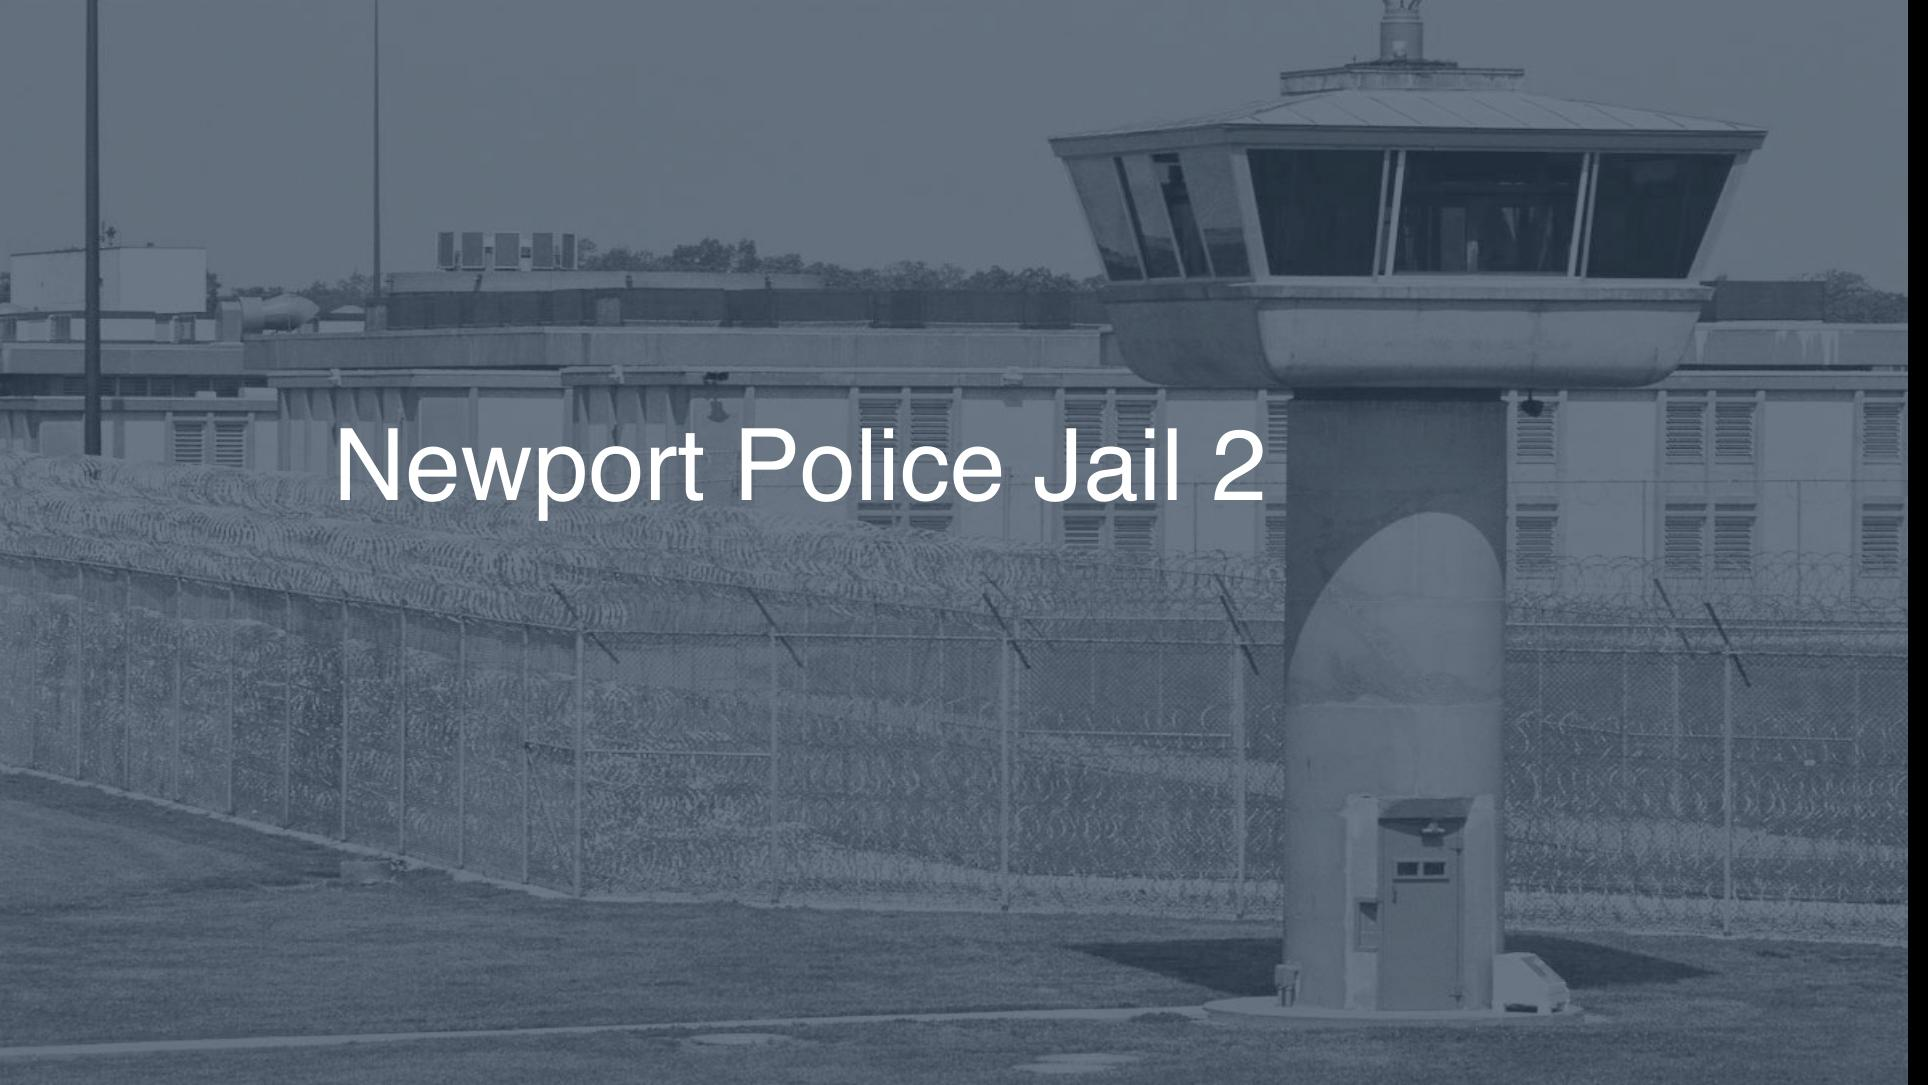 Newport Police Jail correctional facility picture